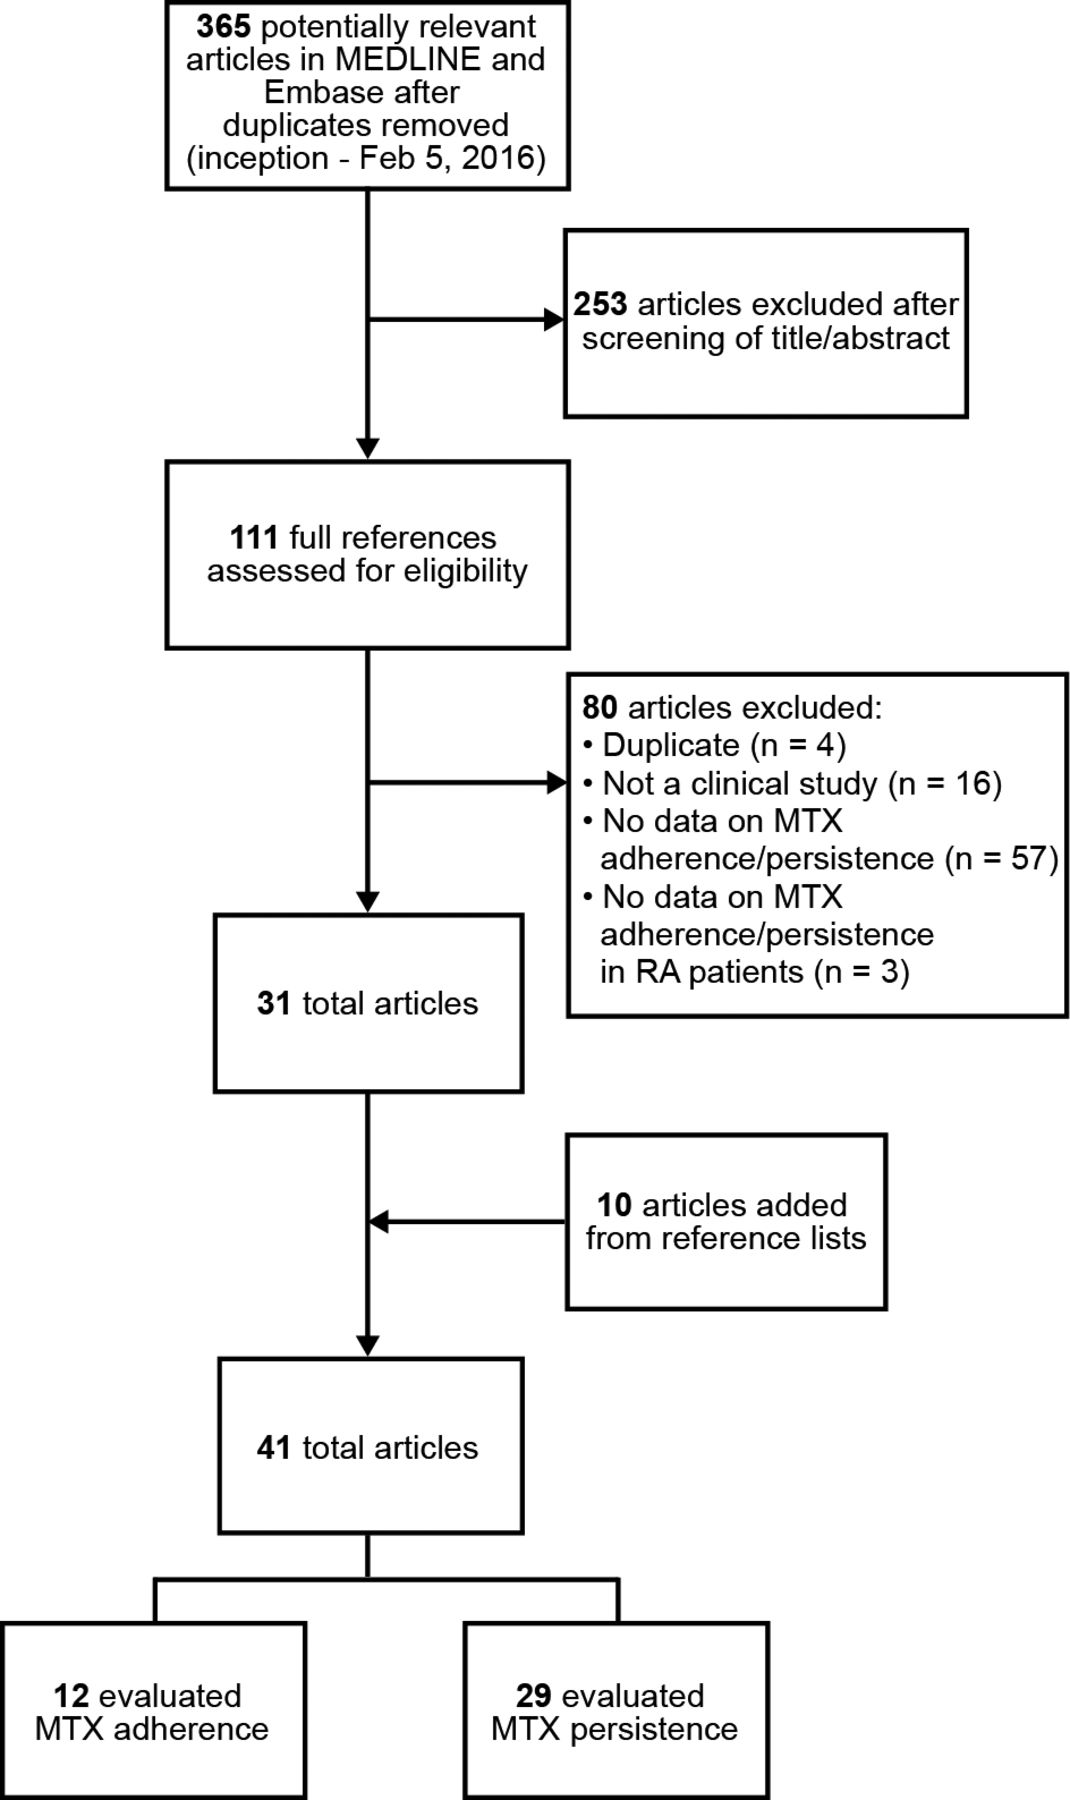 Adherence And Persistence With Methotrexate In Rheumatoid Arthritis A Systematic Review The Journal Of Rheumatology